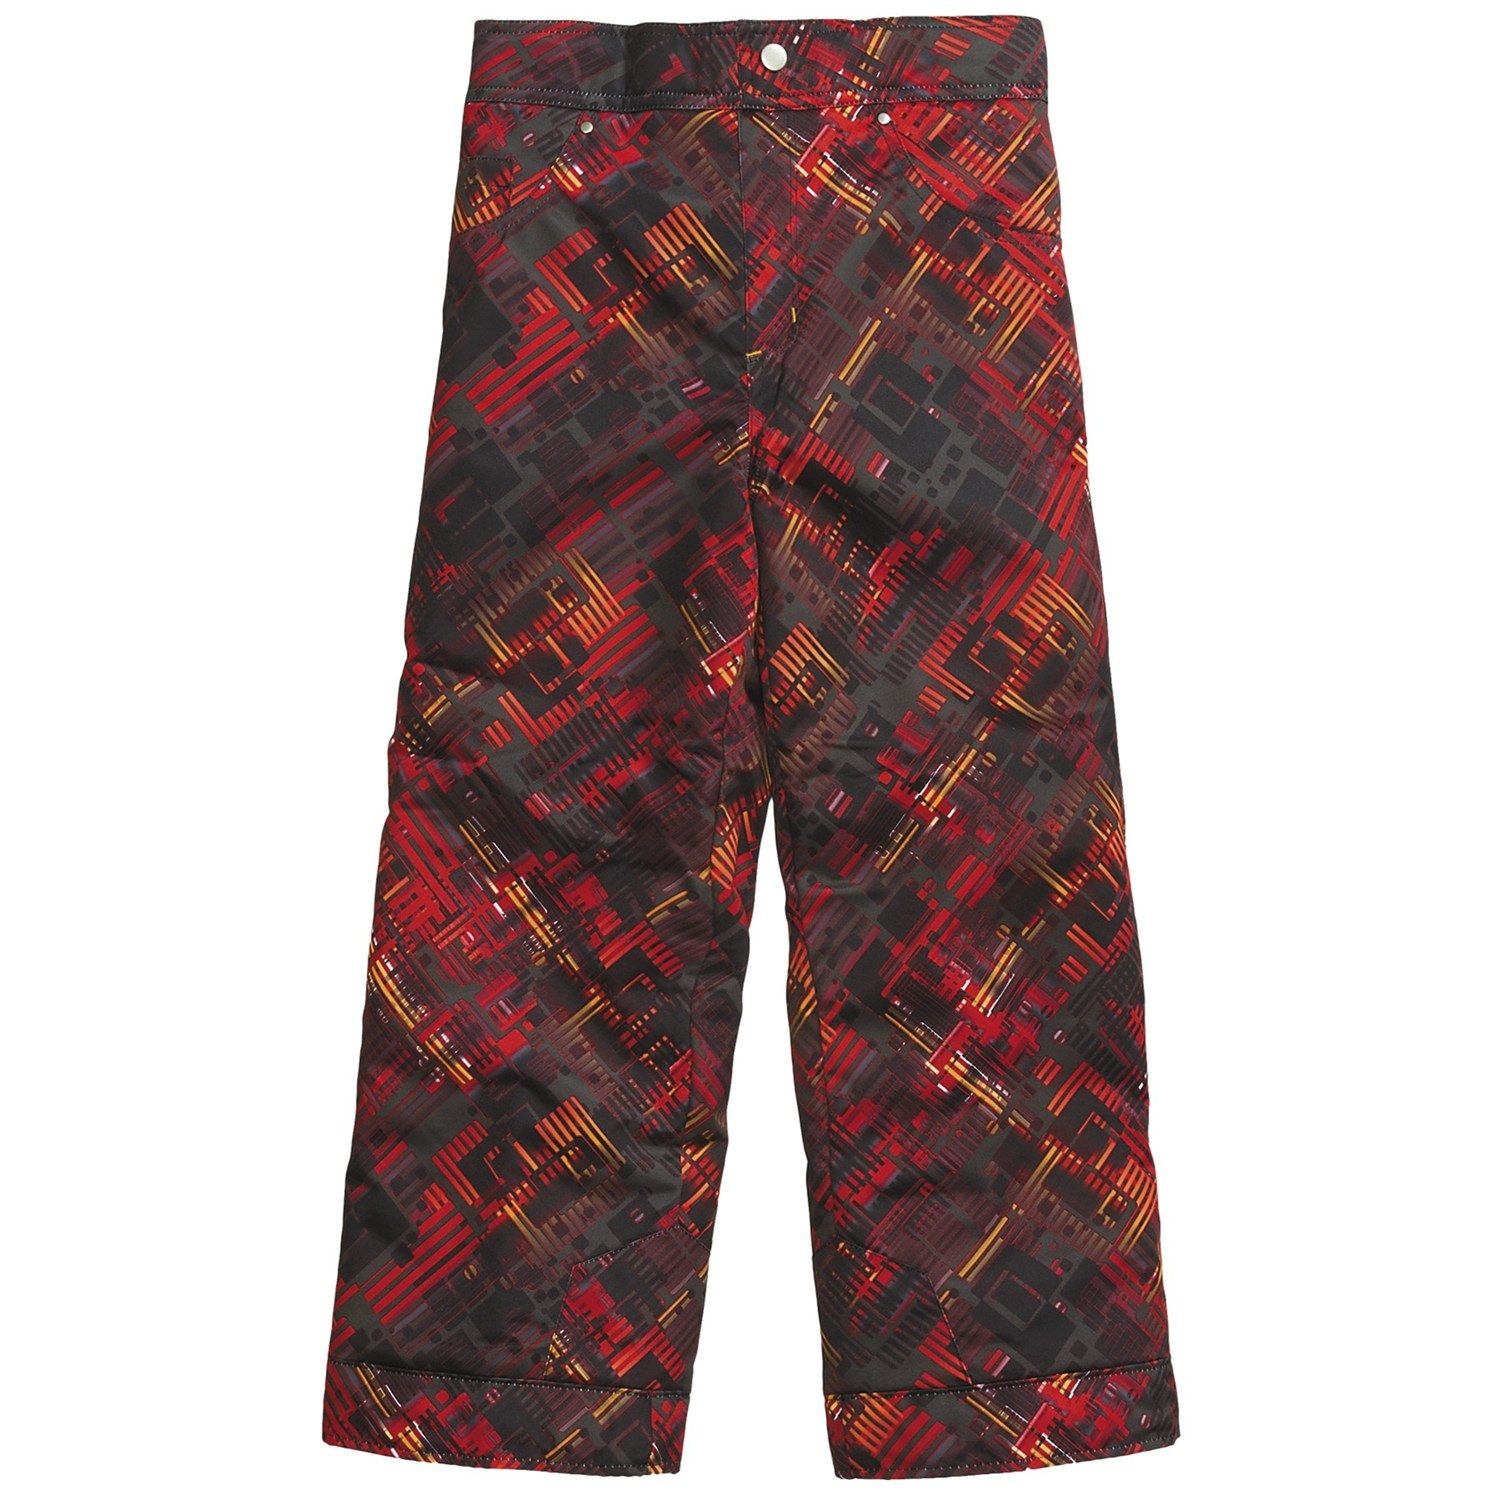 obermeyer-racer-snow-pants-insulated-for-little-boys-in-red-schematic-print.